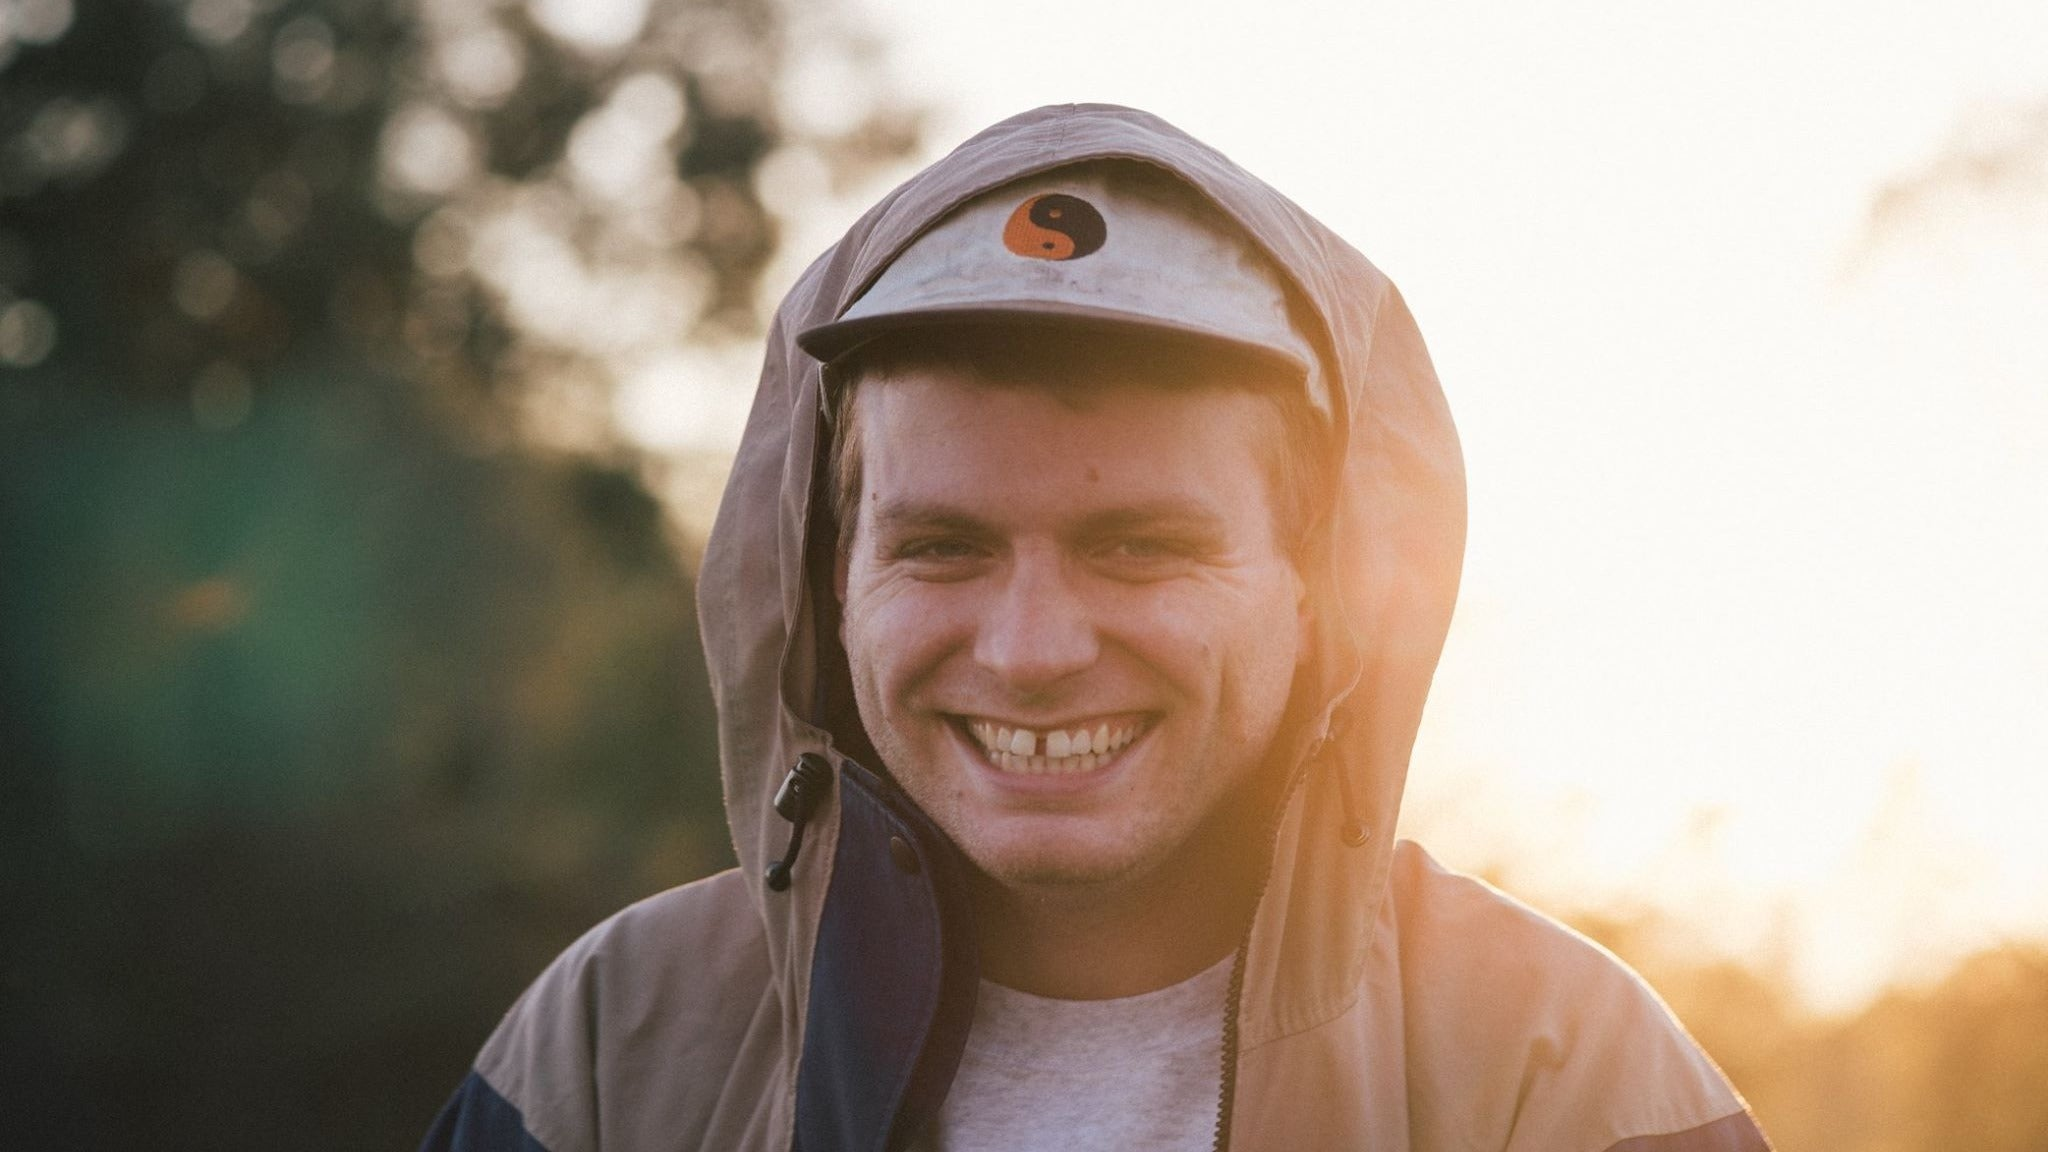 Mac DeMarco at Red Rocks Amphitheatre - Morrison, CO 80465